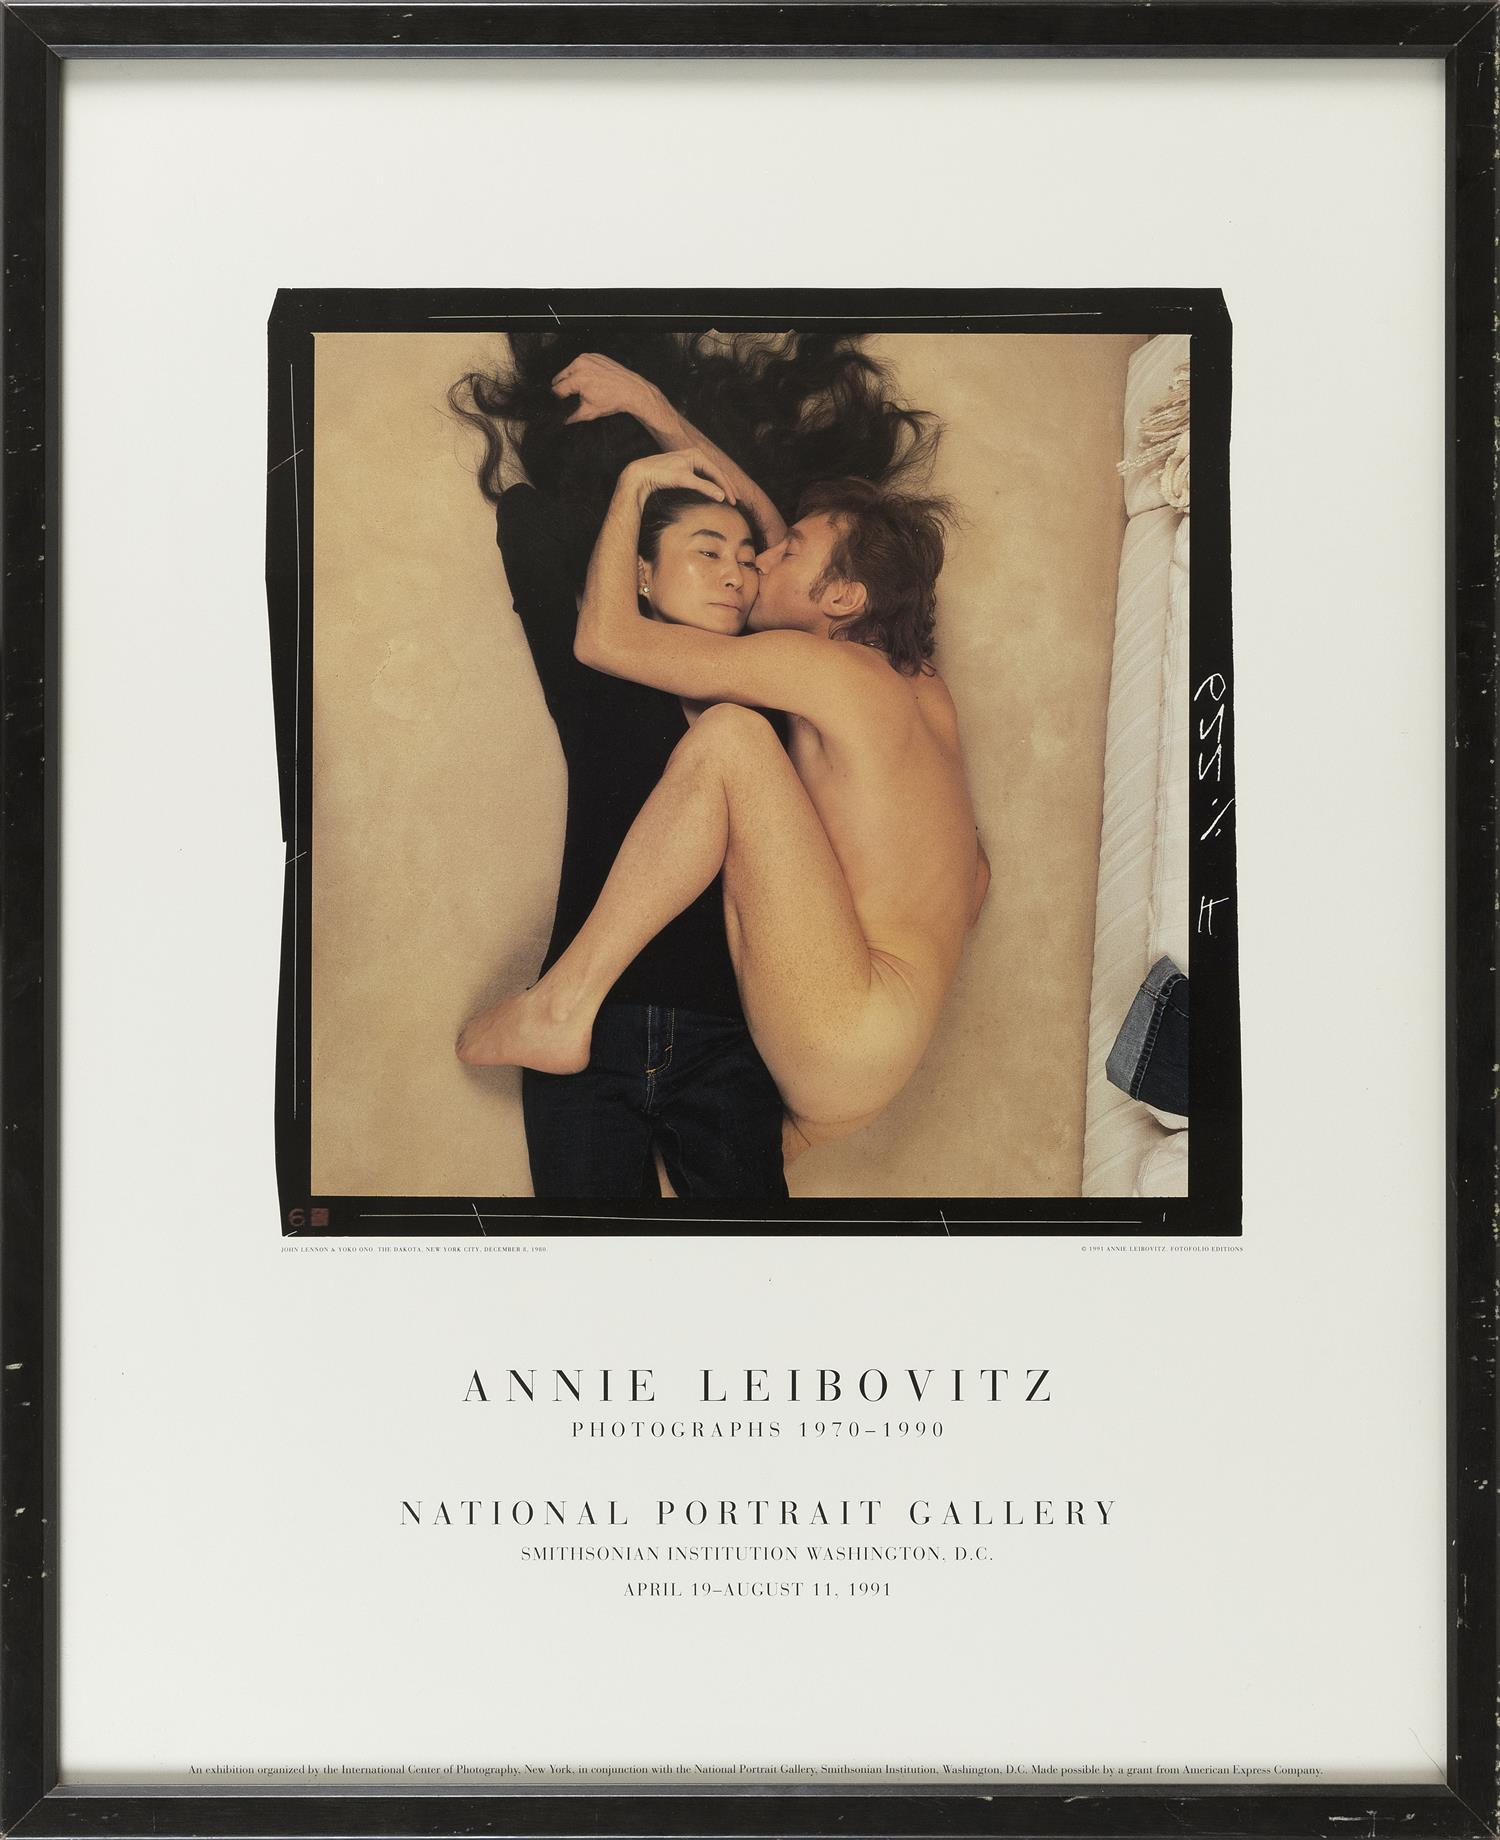 "POSTER FOR ""ANNIE LEIBOVITZ PHOTOGRAPHS 1970-1990"" AT THE NATIONAL PORTRAIT GALLERY Depicts the iconic image of John Lennon and Yoko..."